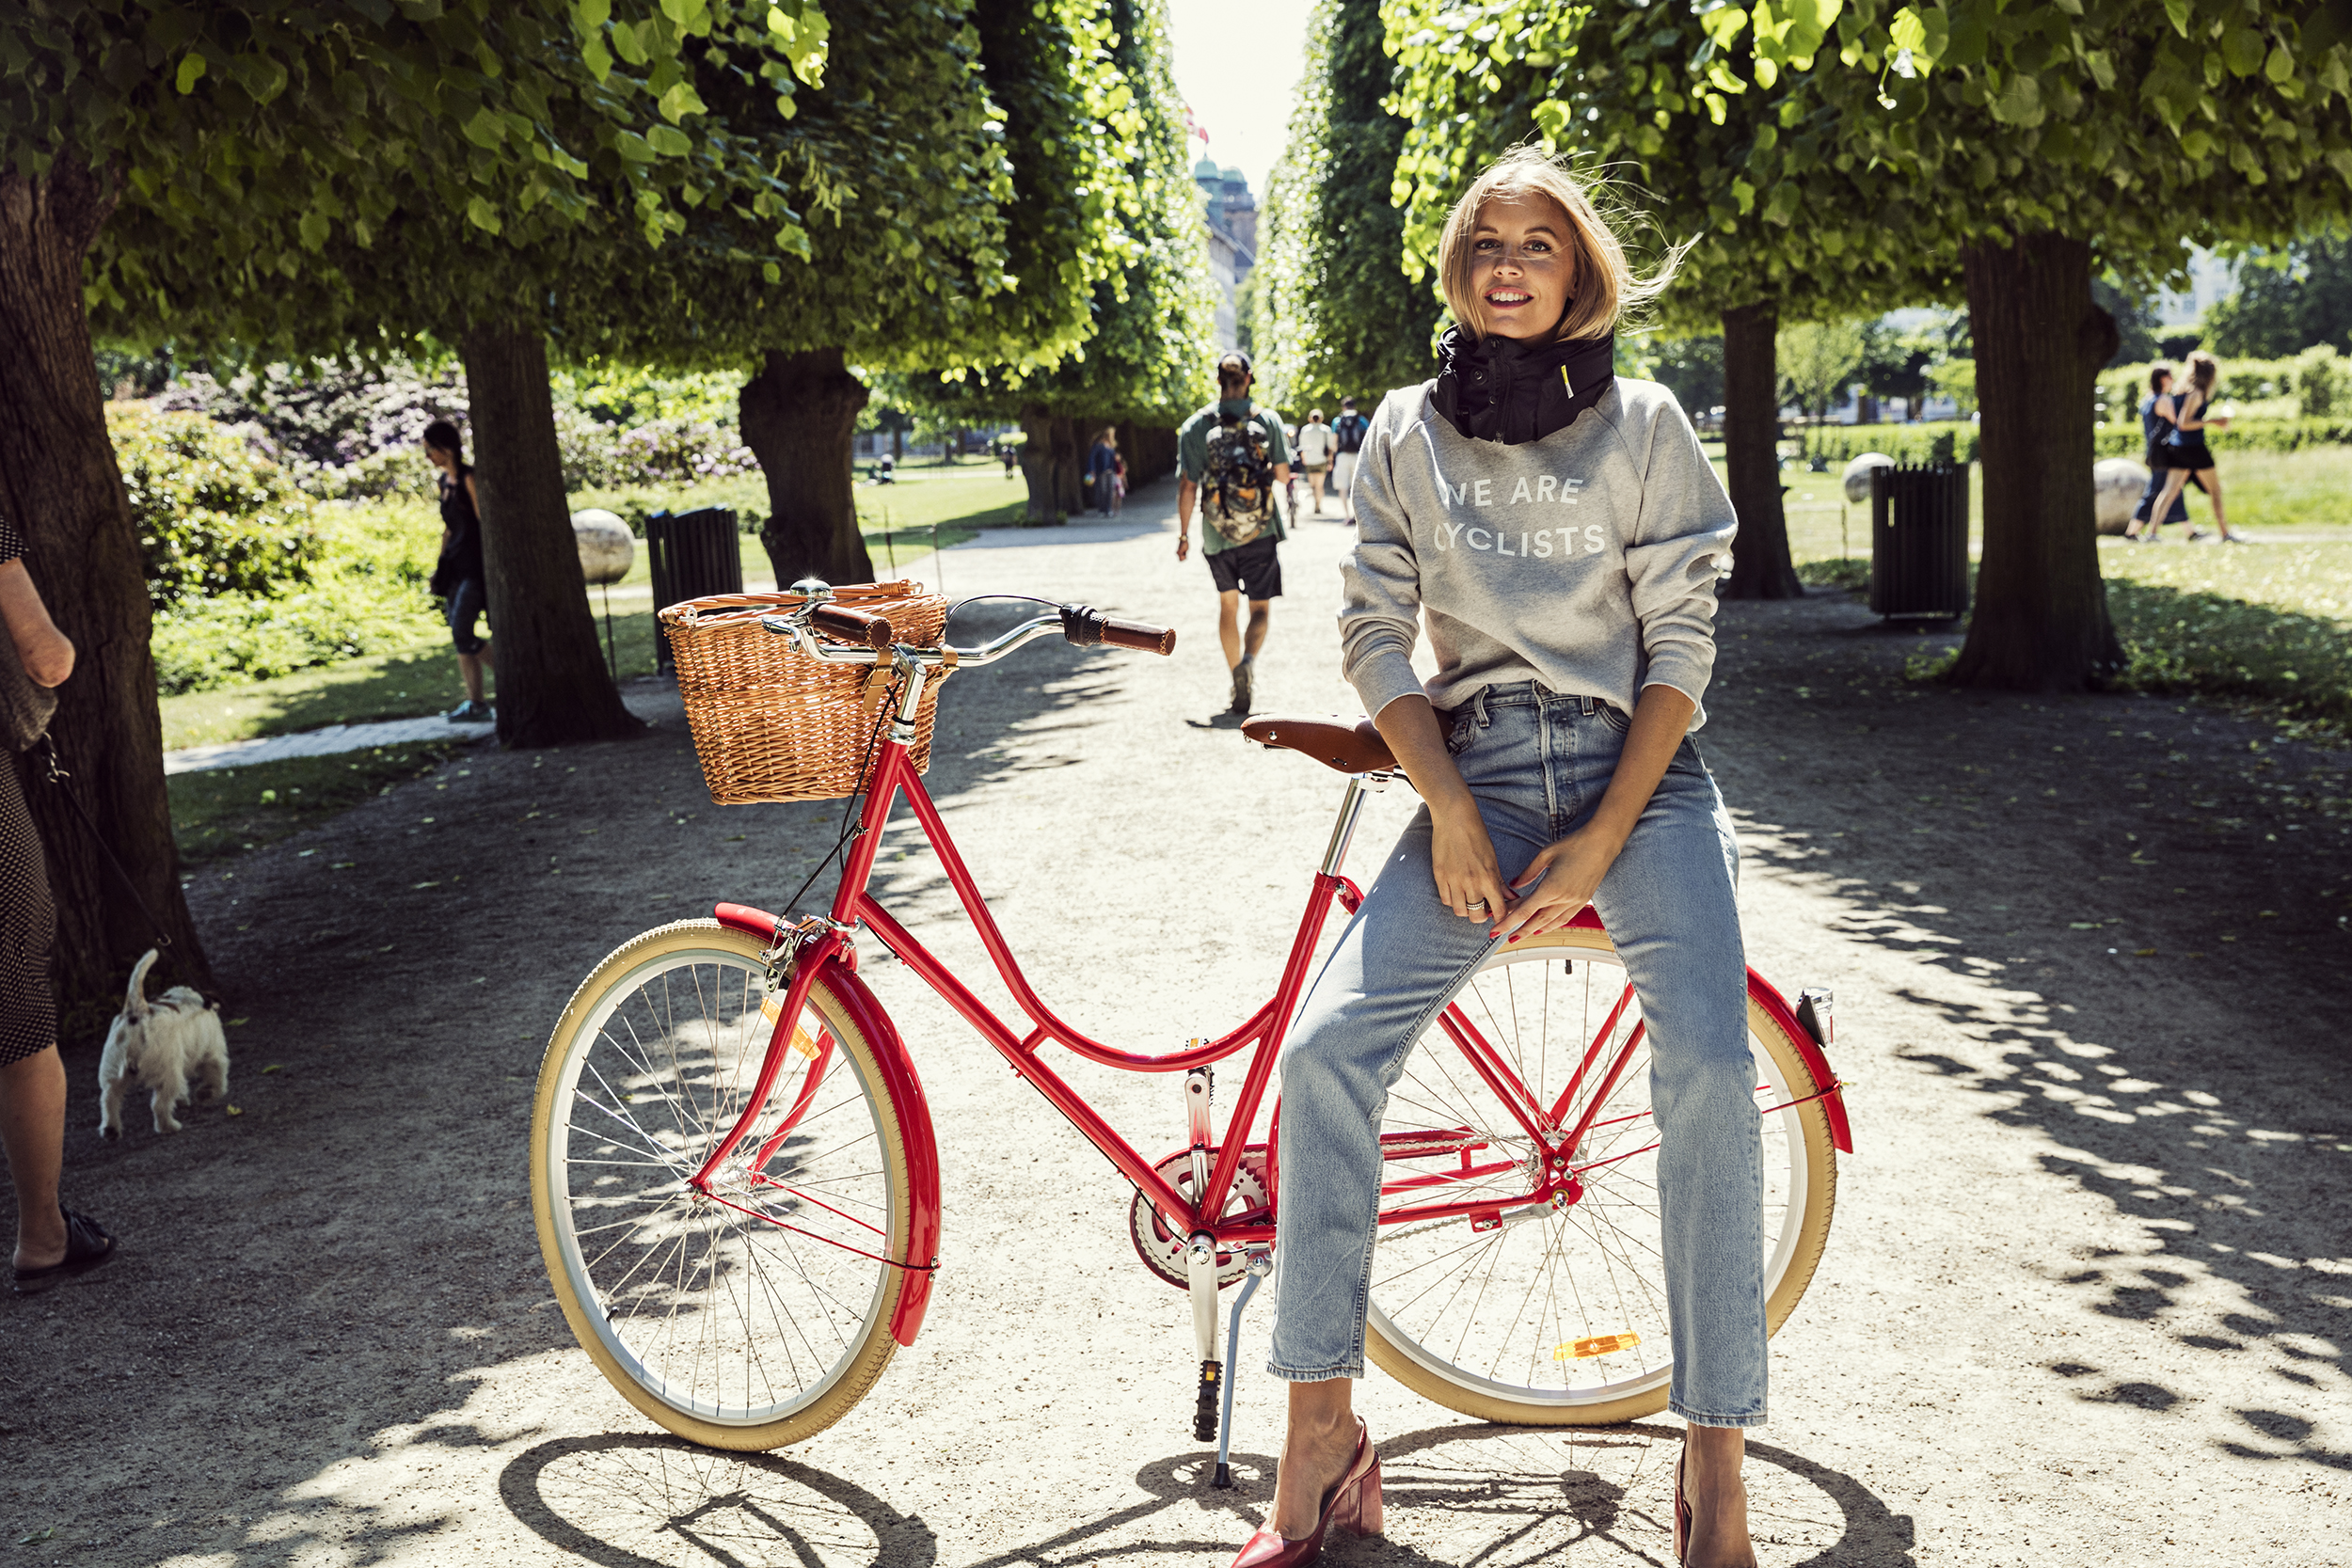 https://www.garbergsmalmo.se/wp-content/uploads/2016/08/cyclists1.jpg